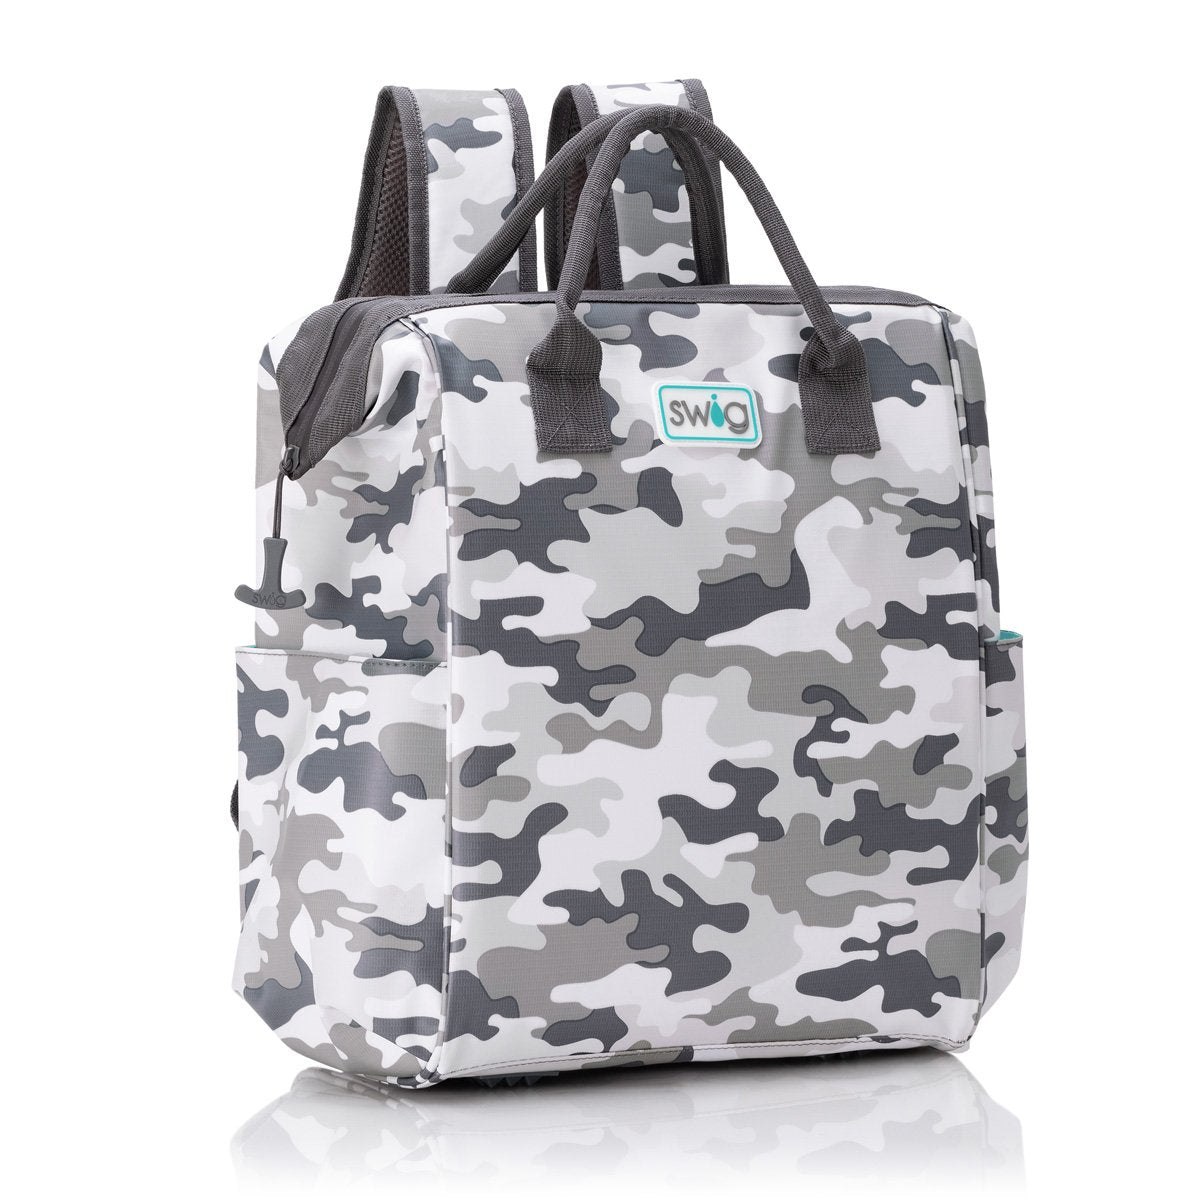 Incognito Camo Packi Backpack Cooler